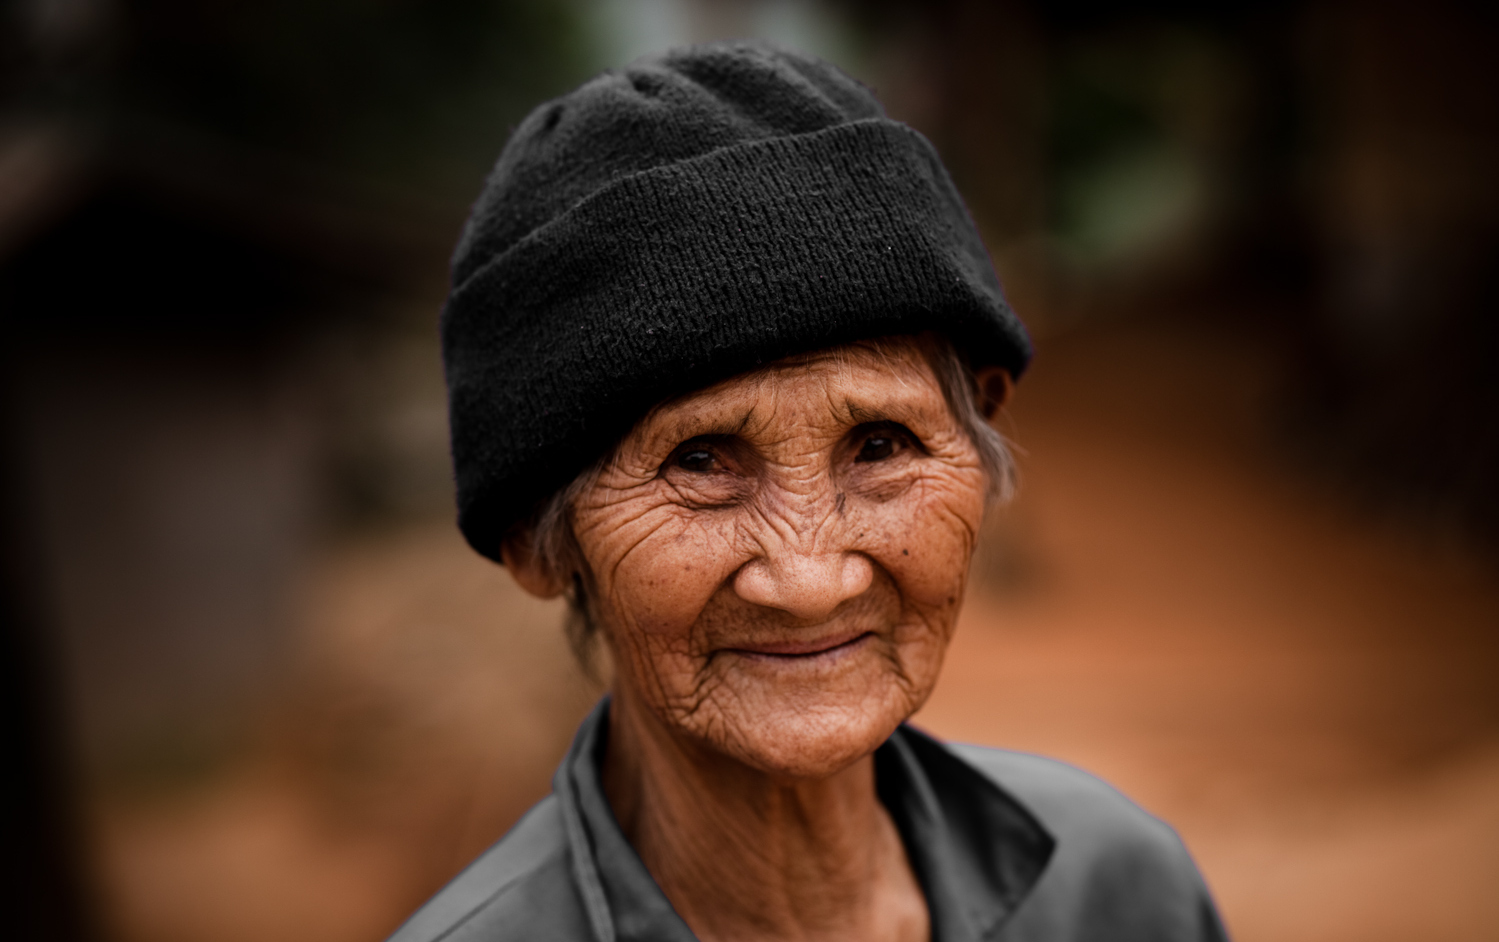 old_woman_by_Eric_Montfort